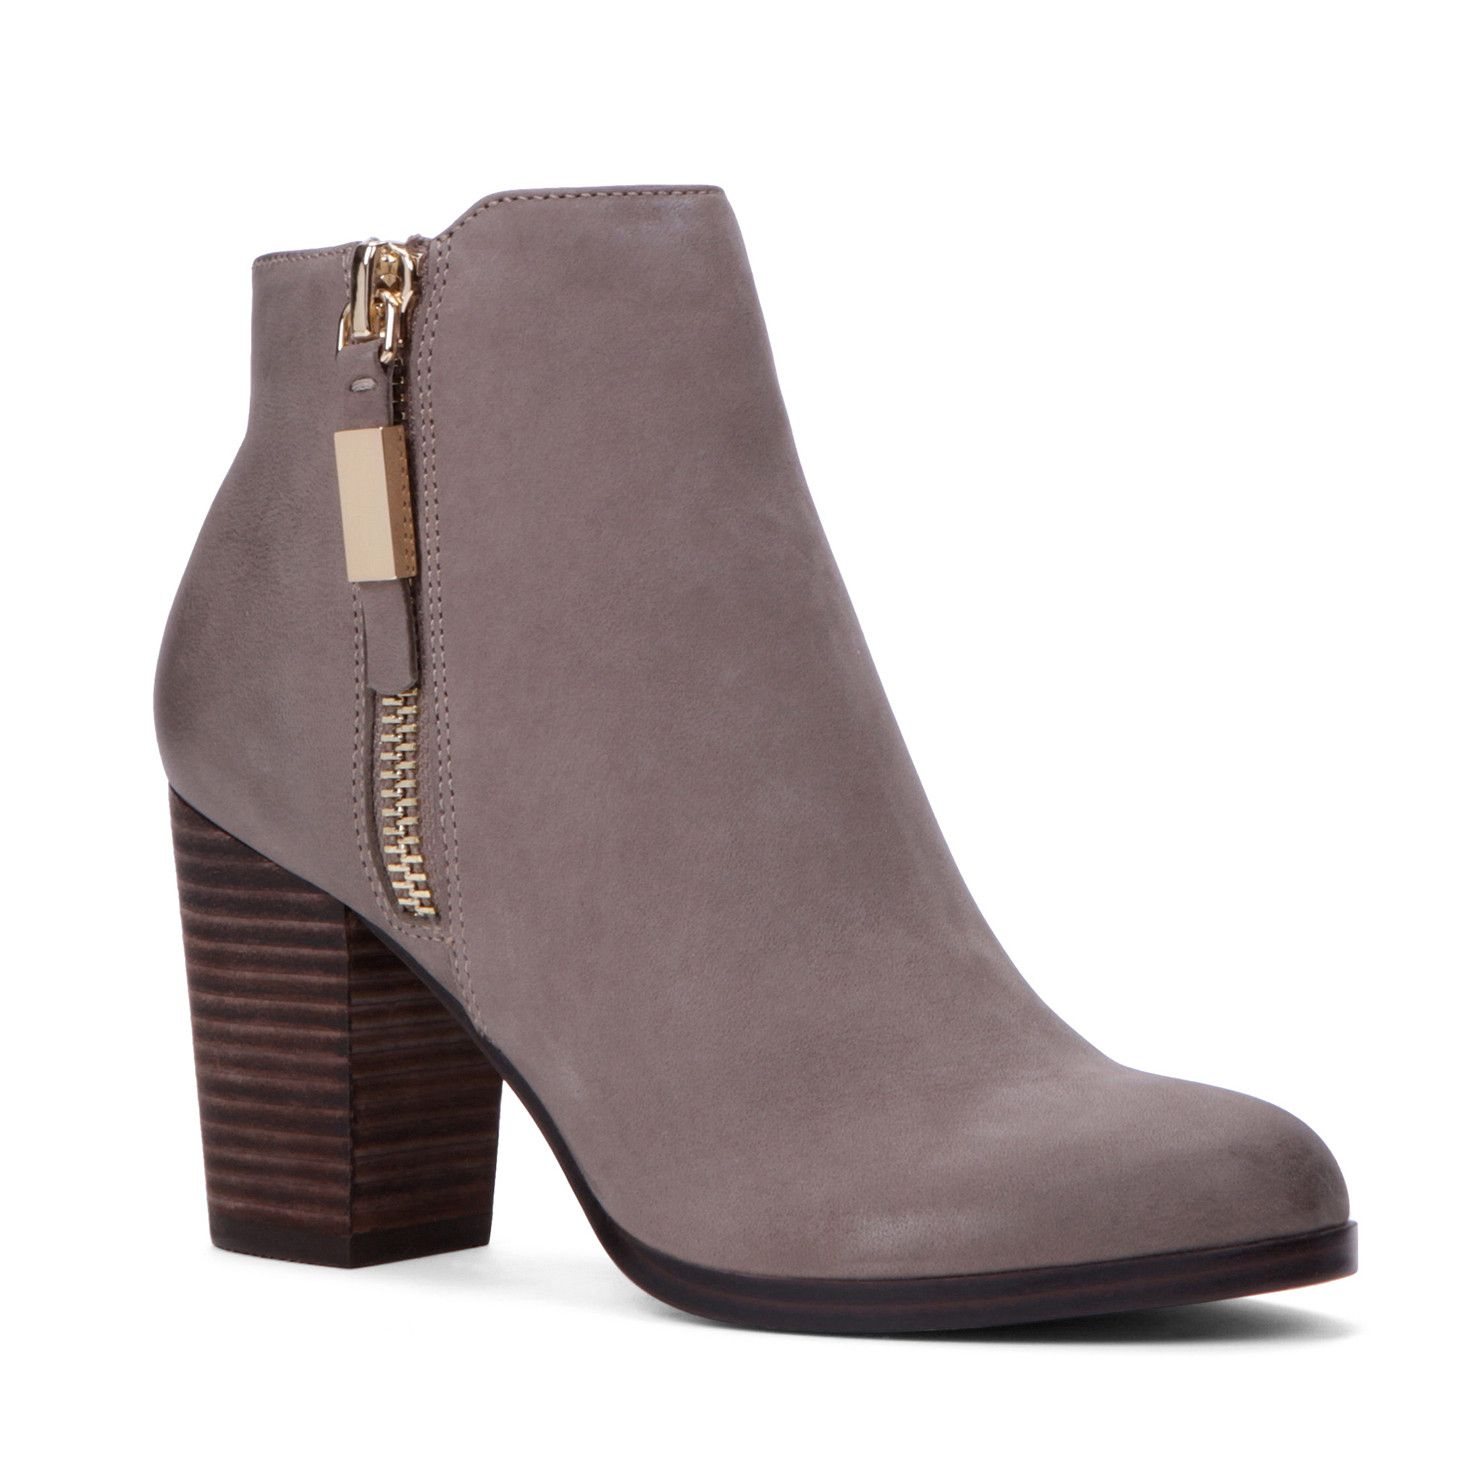 Mathia Ankle Boots | Women's Boots | ALDOShoes Size 8 1/2 Grey ...